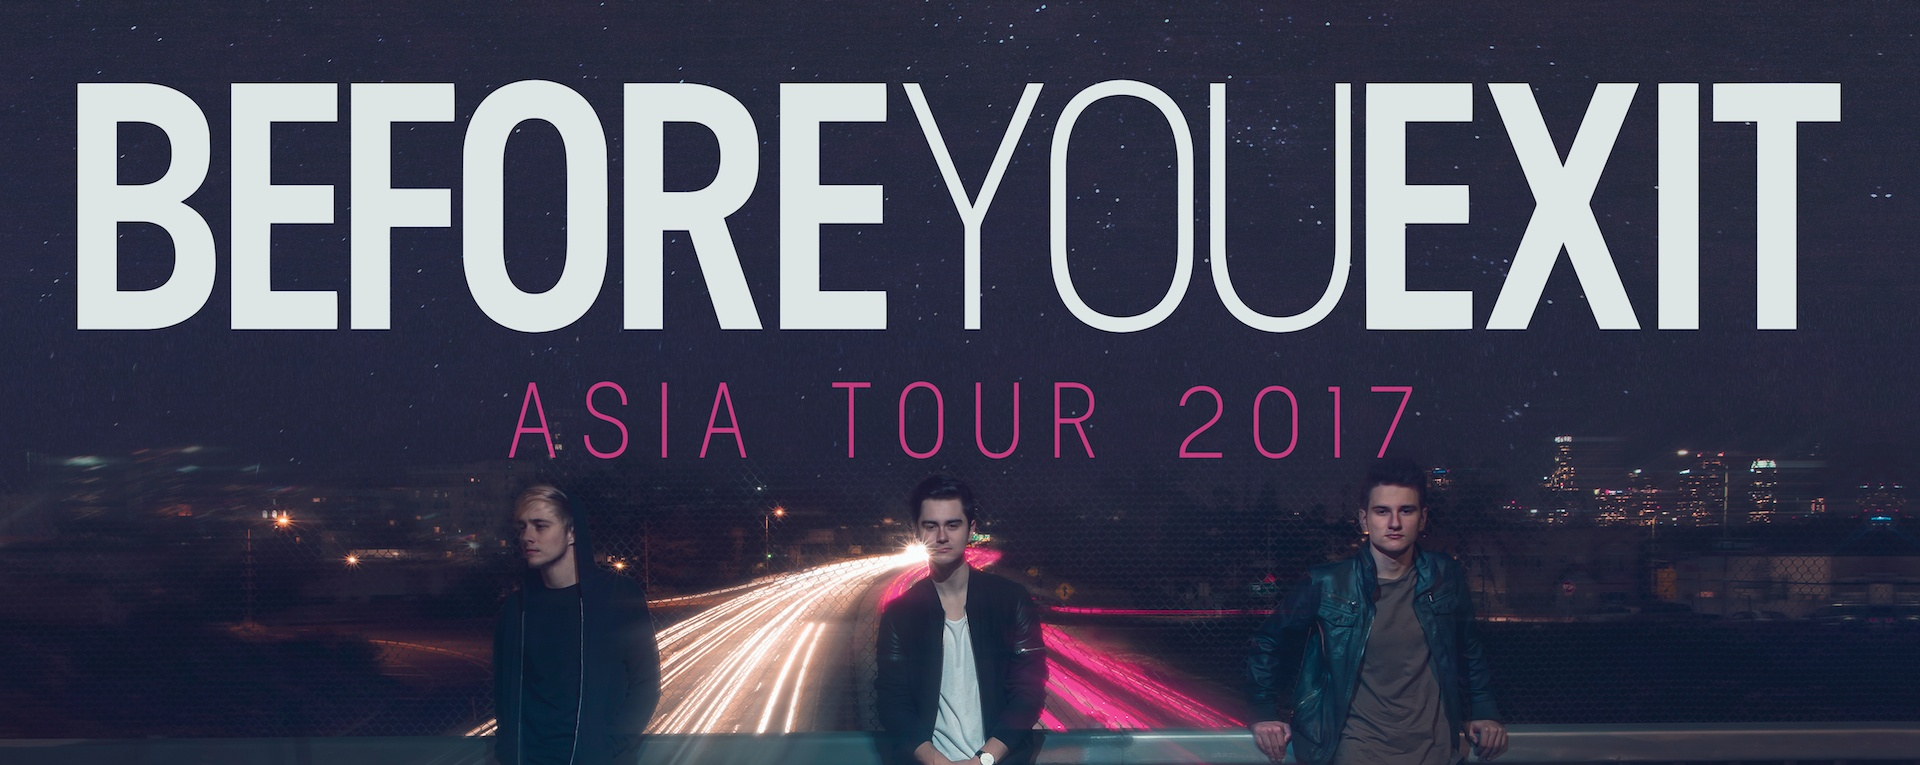 Before You Exit live in Singapore